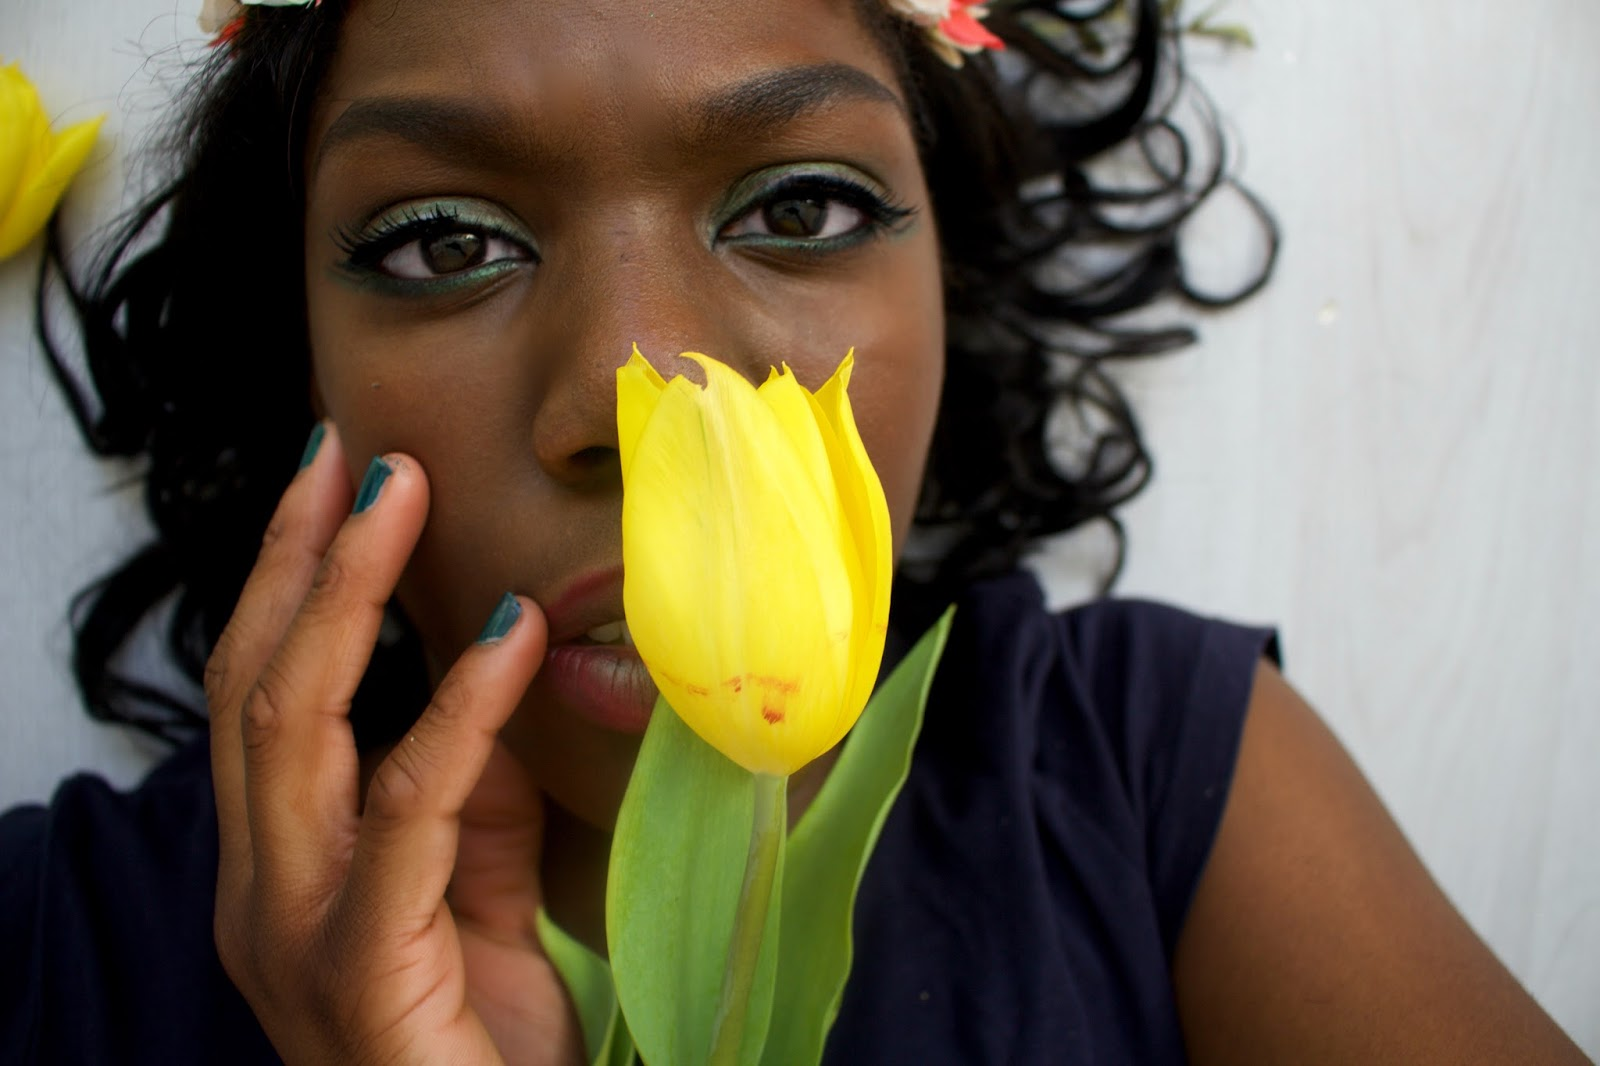 4 Reasons Hayfever must die. Hayfever rant. Hate Hayfever, green eyeshadow. canon 700d photography, yellow tulips,close up. Portraiture, portrait shot. 100 Ways to 30, life and style blog.